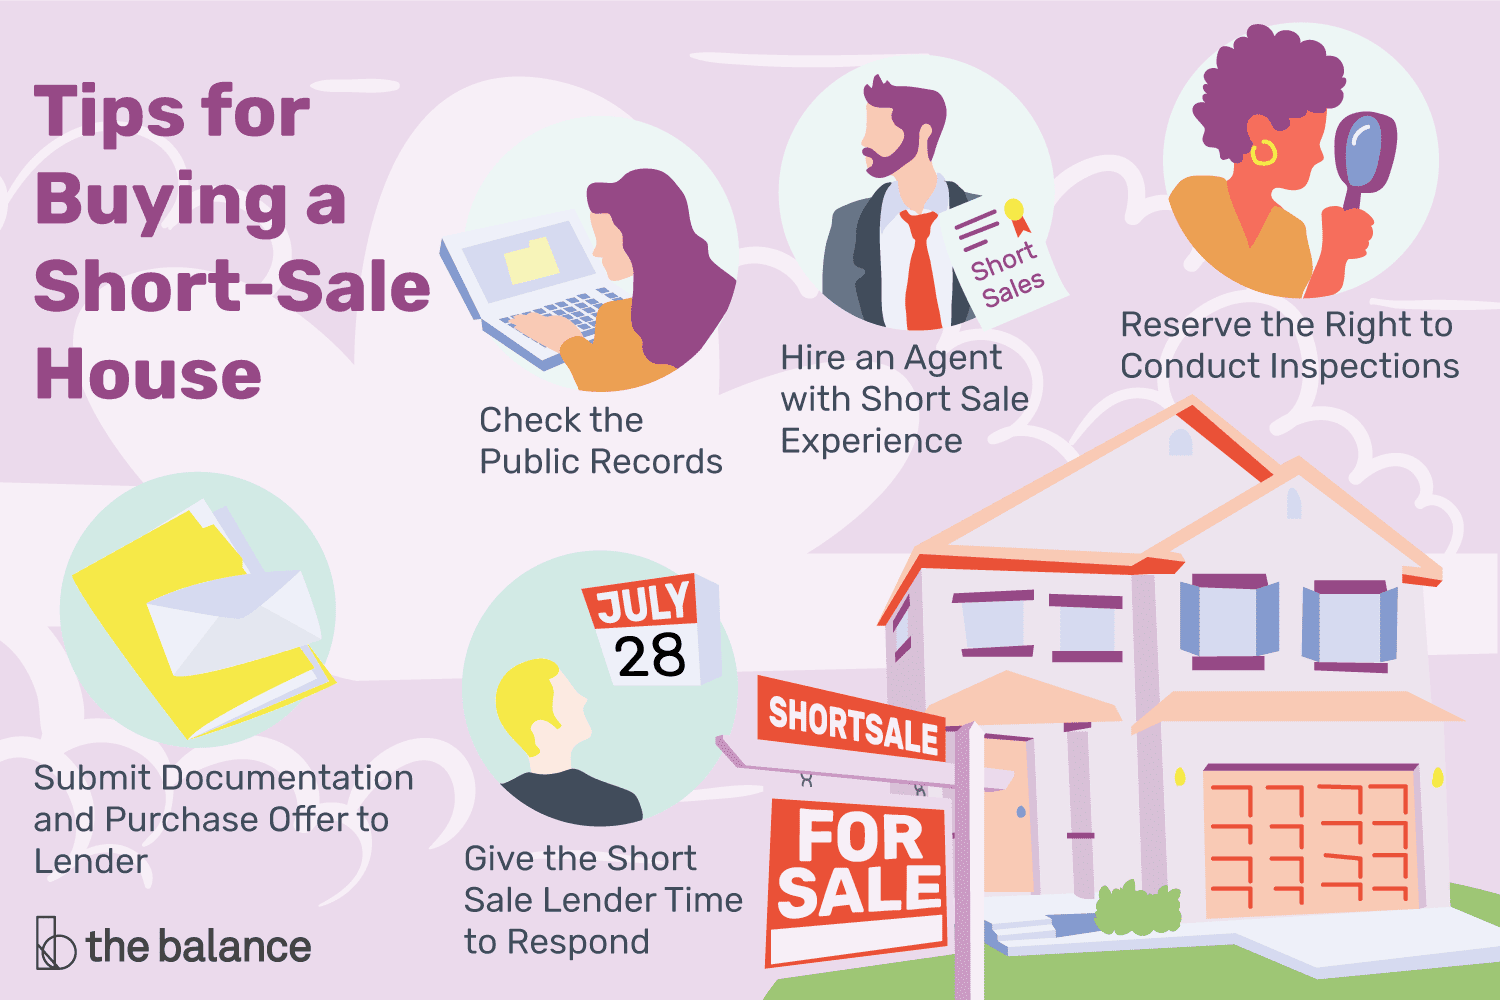 before buying a short sale home